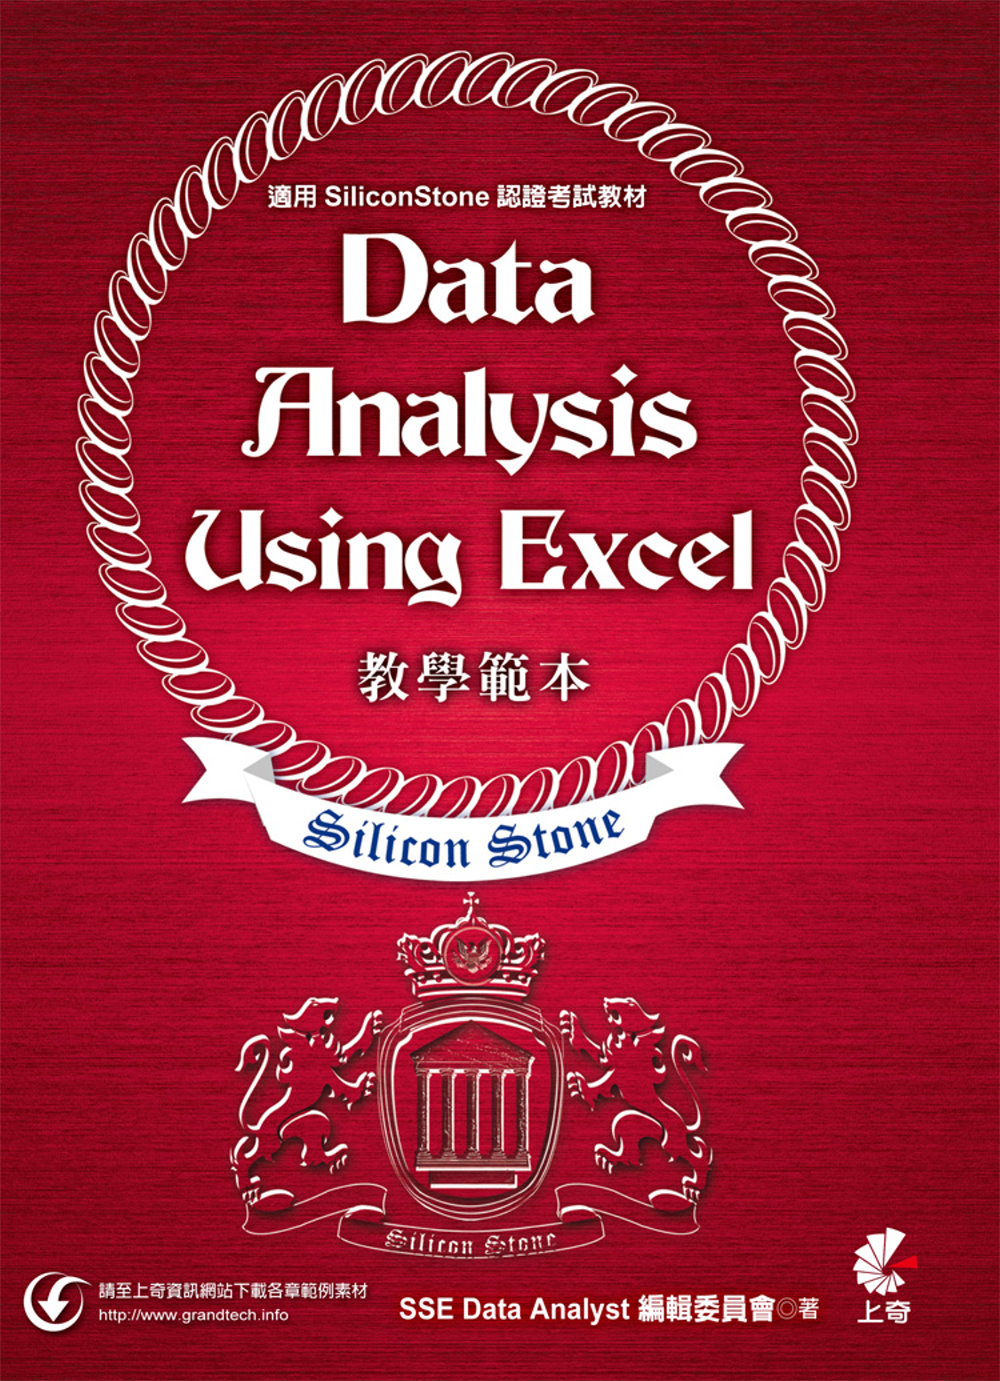 Data Analysis Using Excel 教學範本(適用SiliconStone認證考試教材)